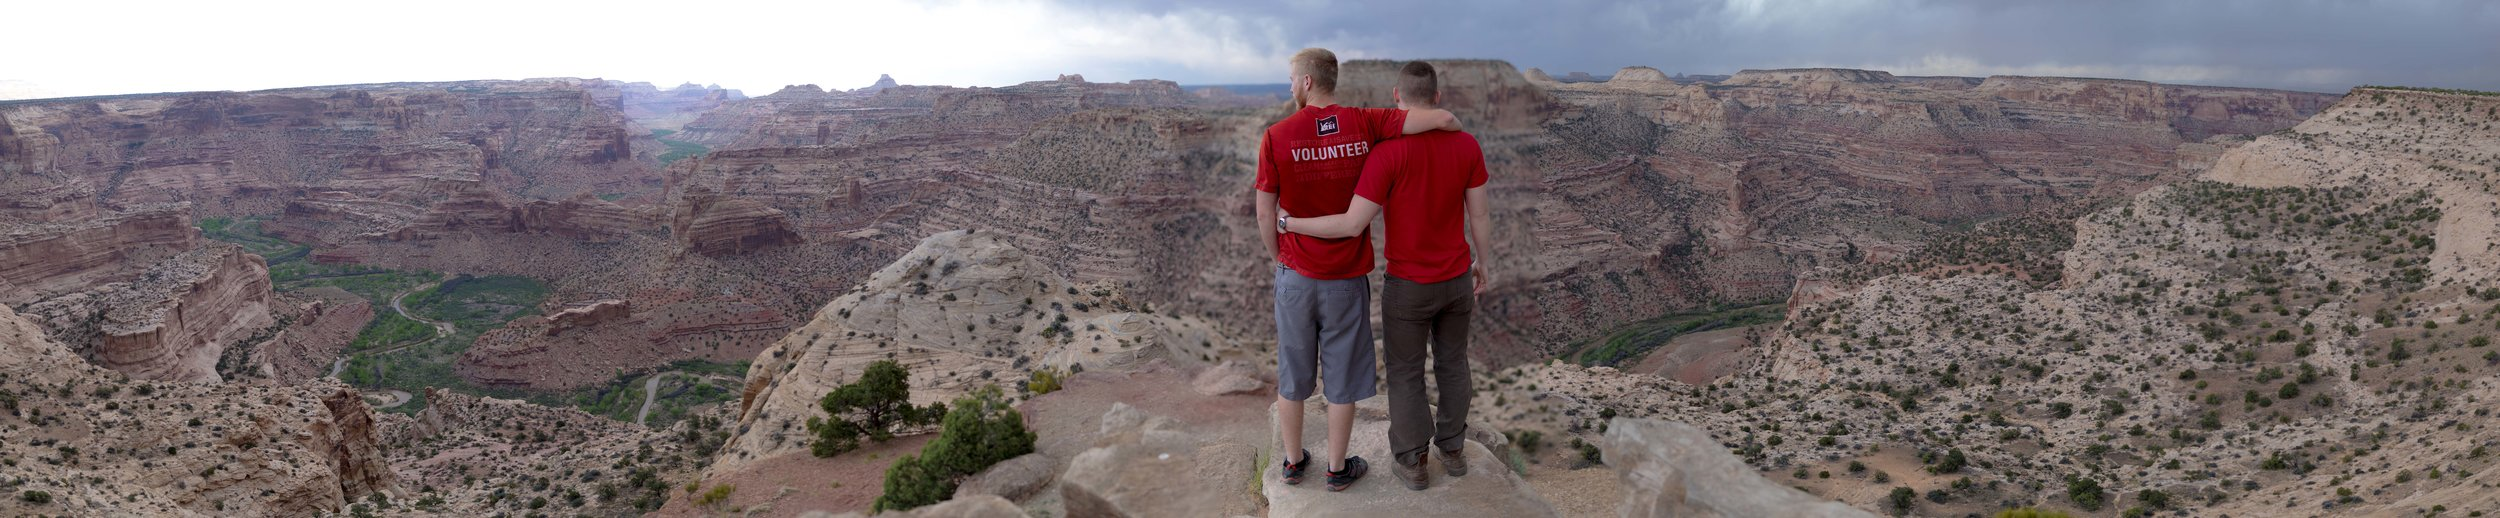 The Wedge Overlook is an impressive feat of erosion that you can reach with your campervan rental from Wandervans in Salt Lake.